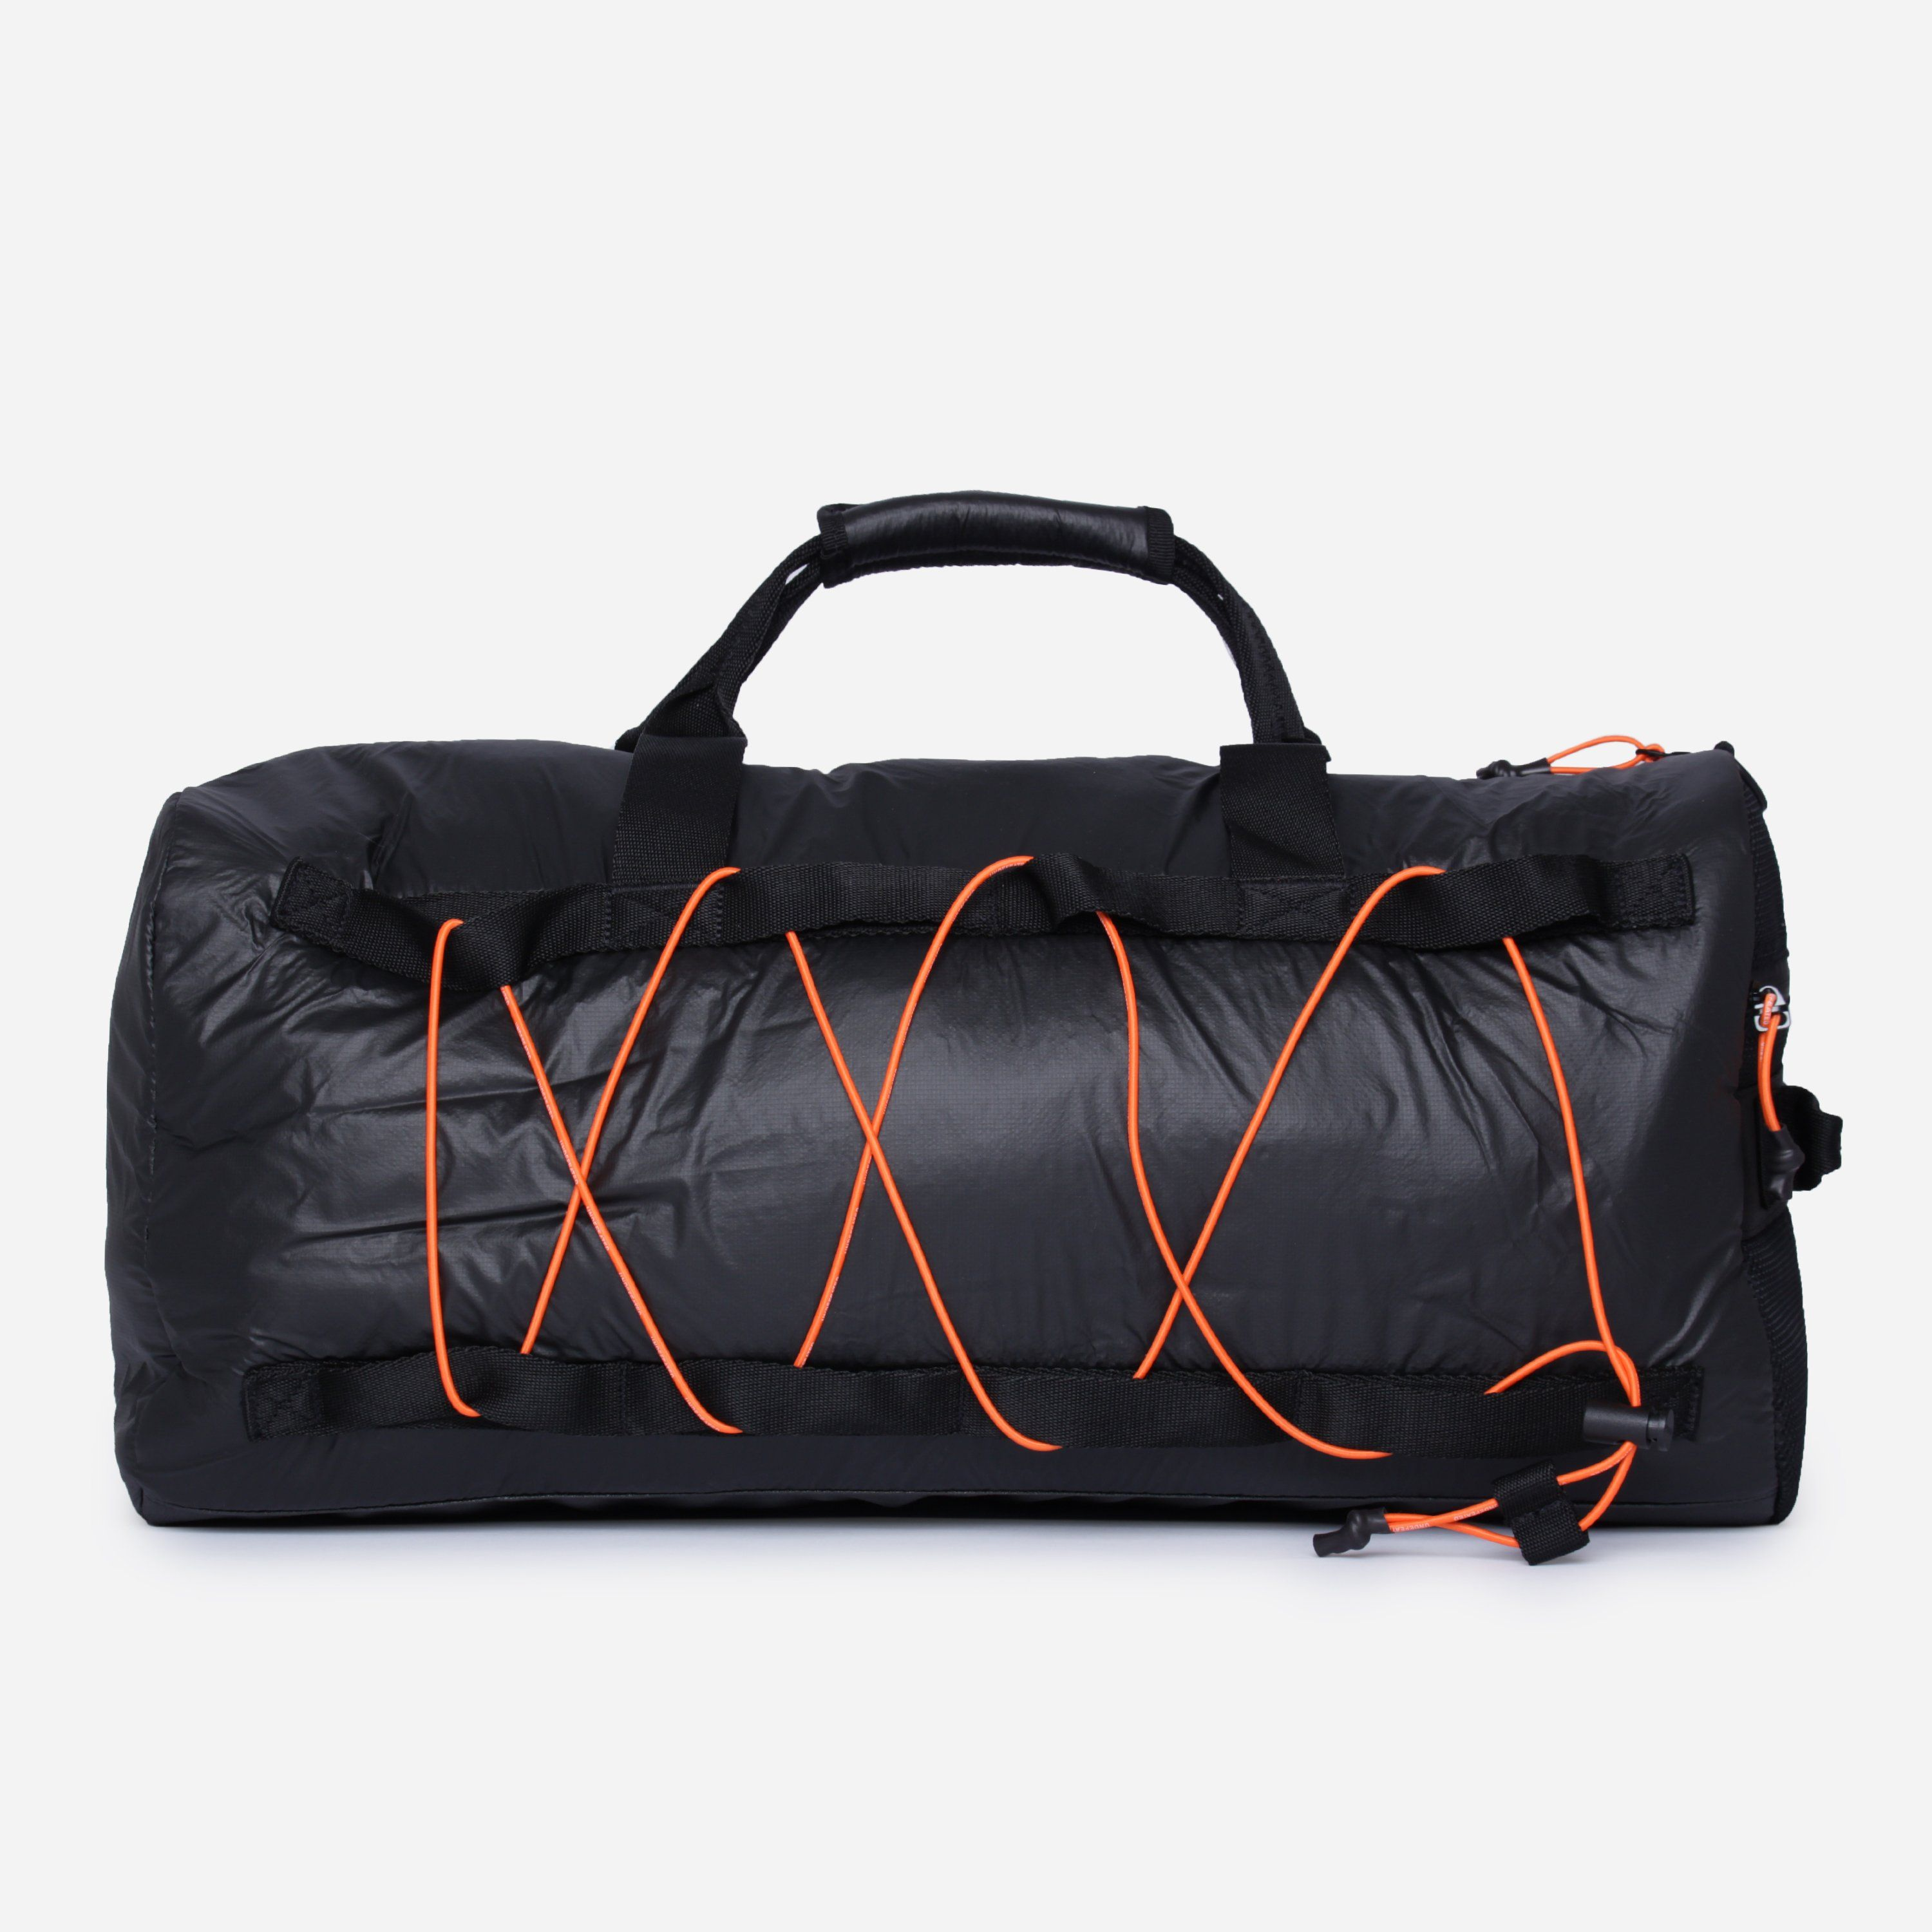 adidas x Undefeated DY5867 GYM DUFFLE